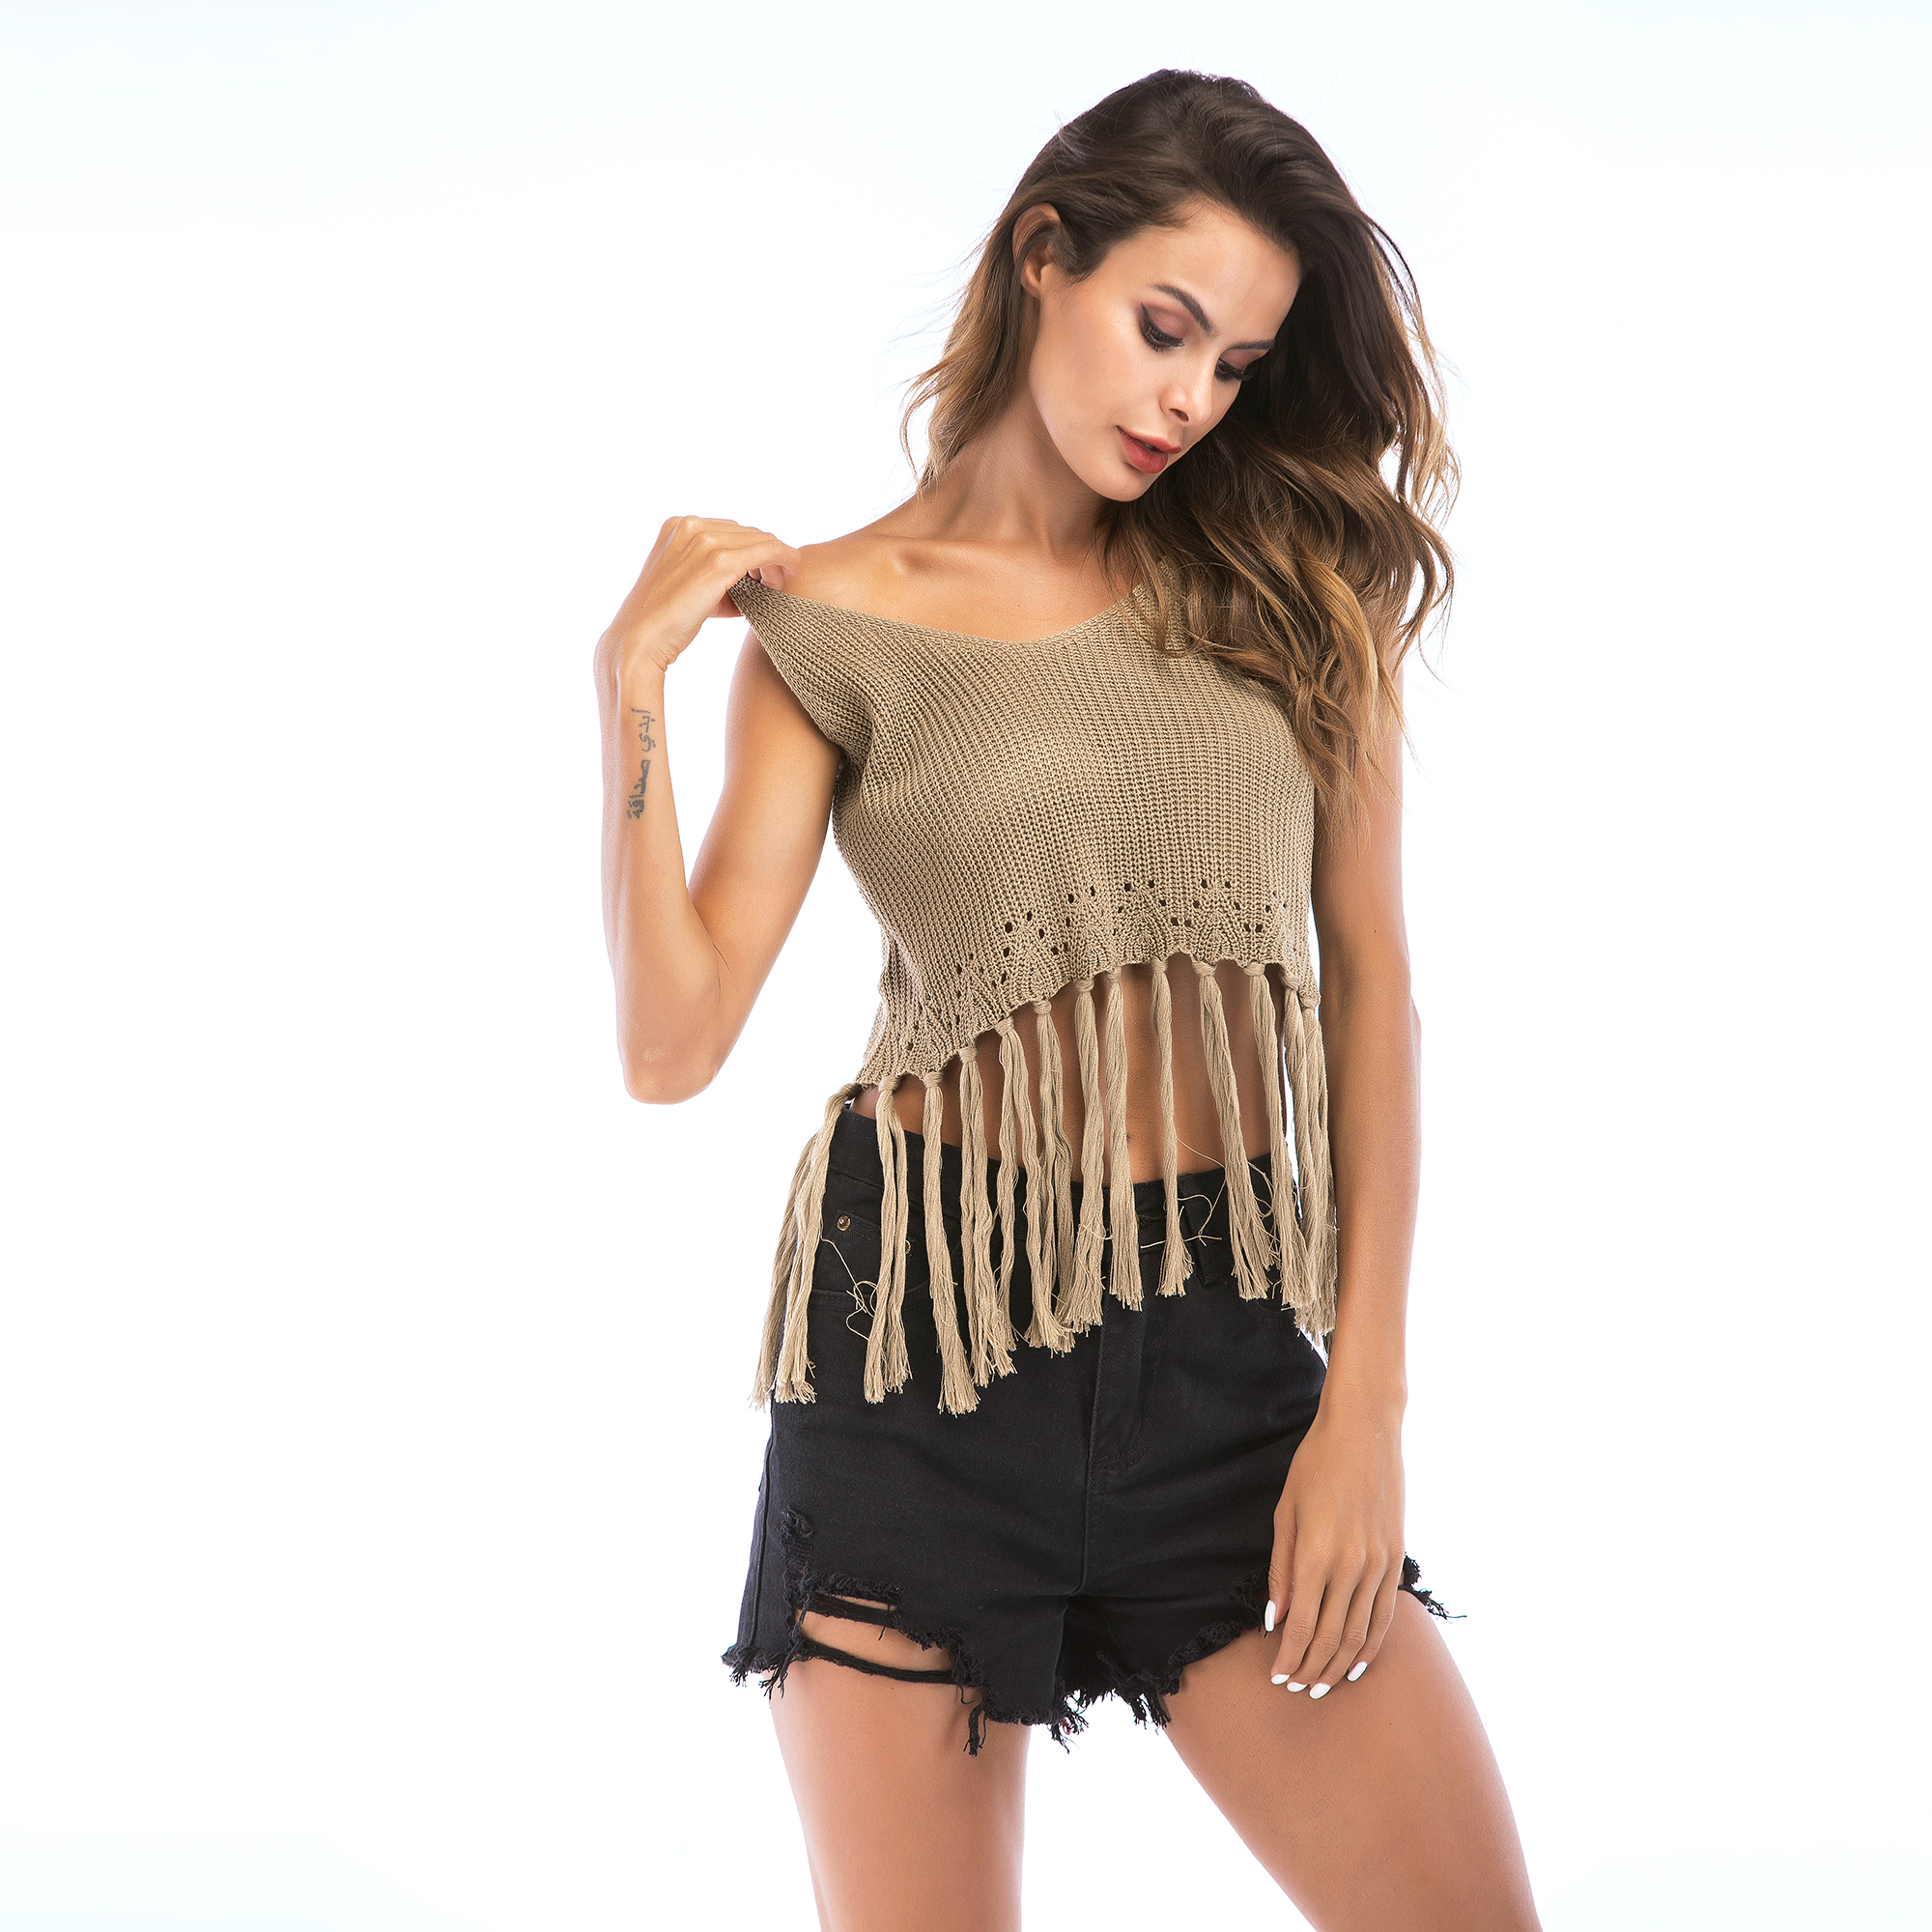 VZFF Women 39 s Sexy knitted camisole female summer 2019 short paragraph wild hook flower hollow tassel sleeveless shirt Cami Tops in Camis from Women 39 s Clothing